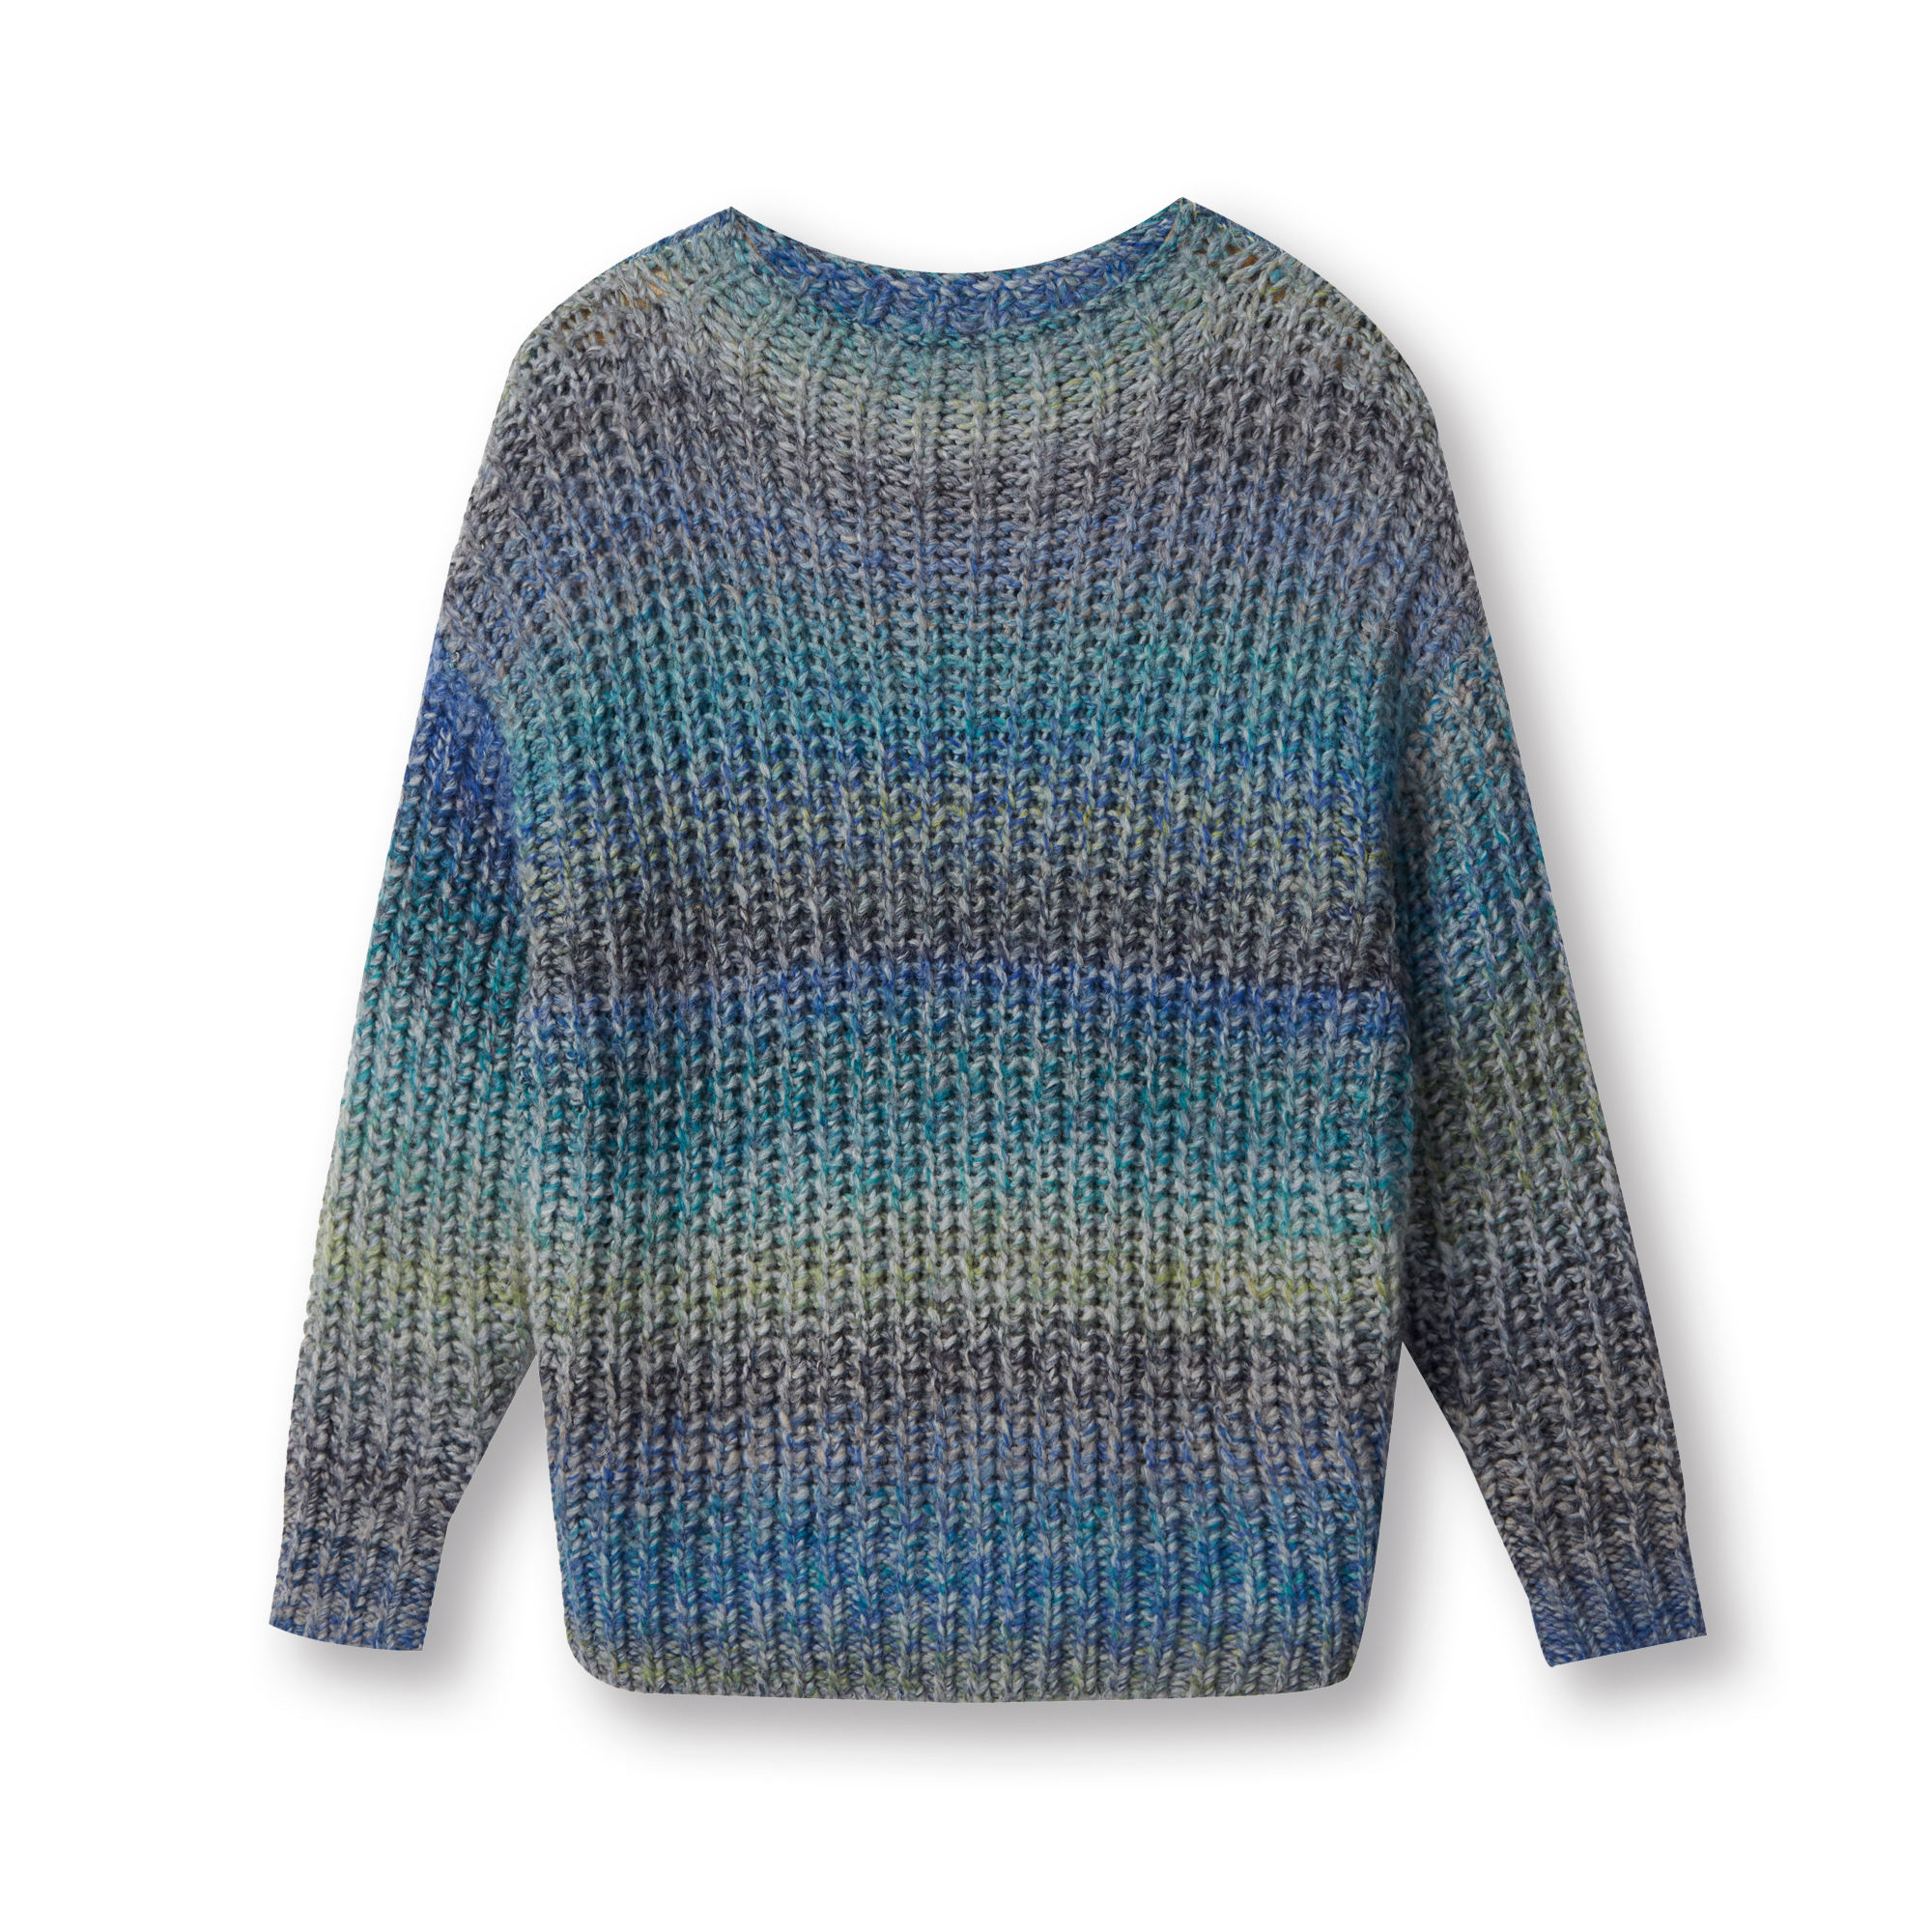 Custom knit sweater Italian space dye yarn women pullover sweater